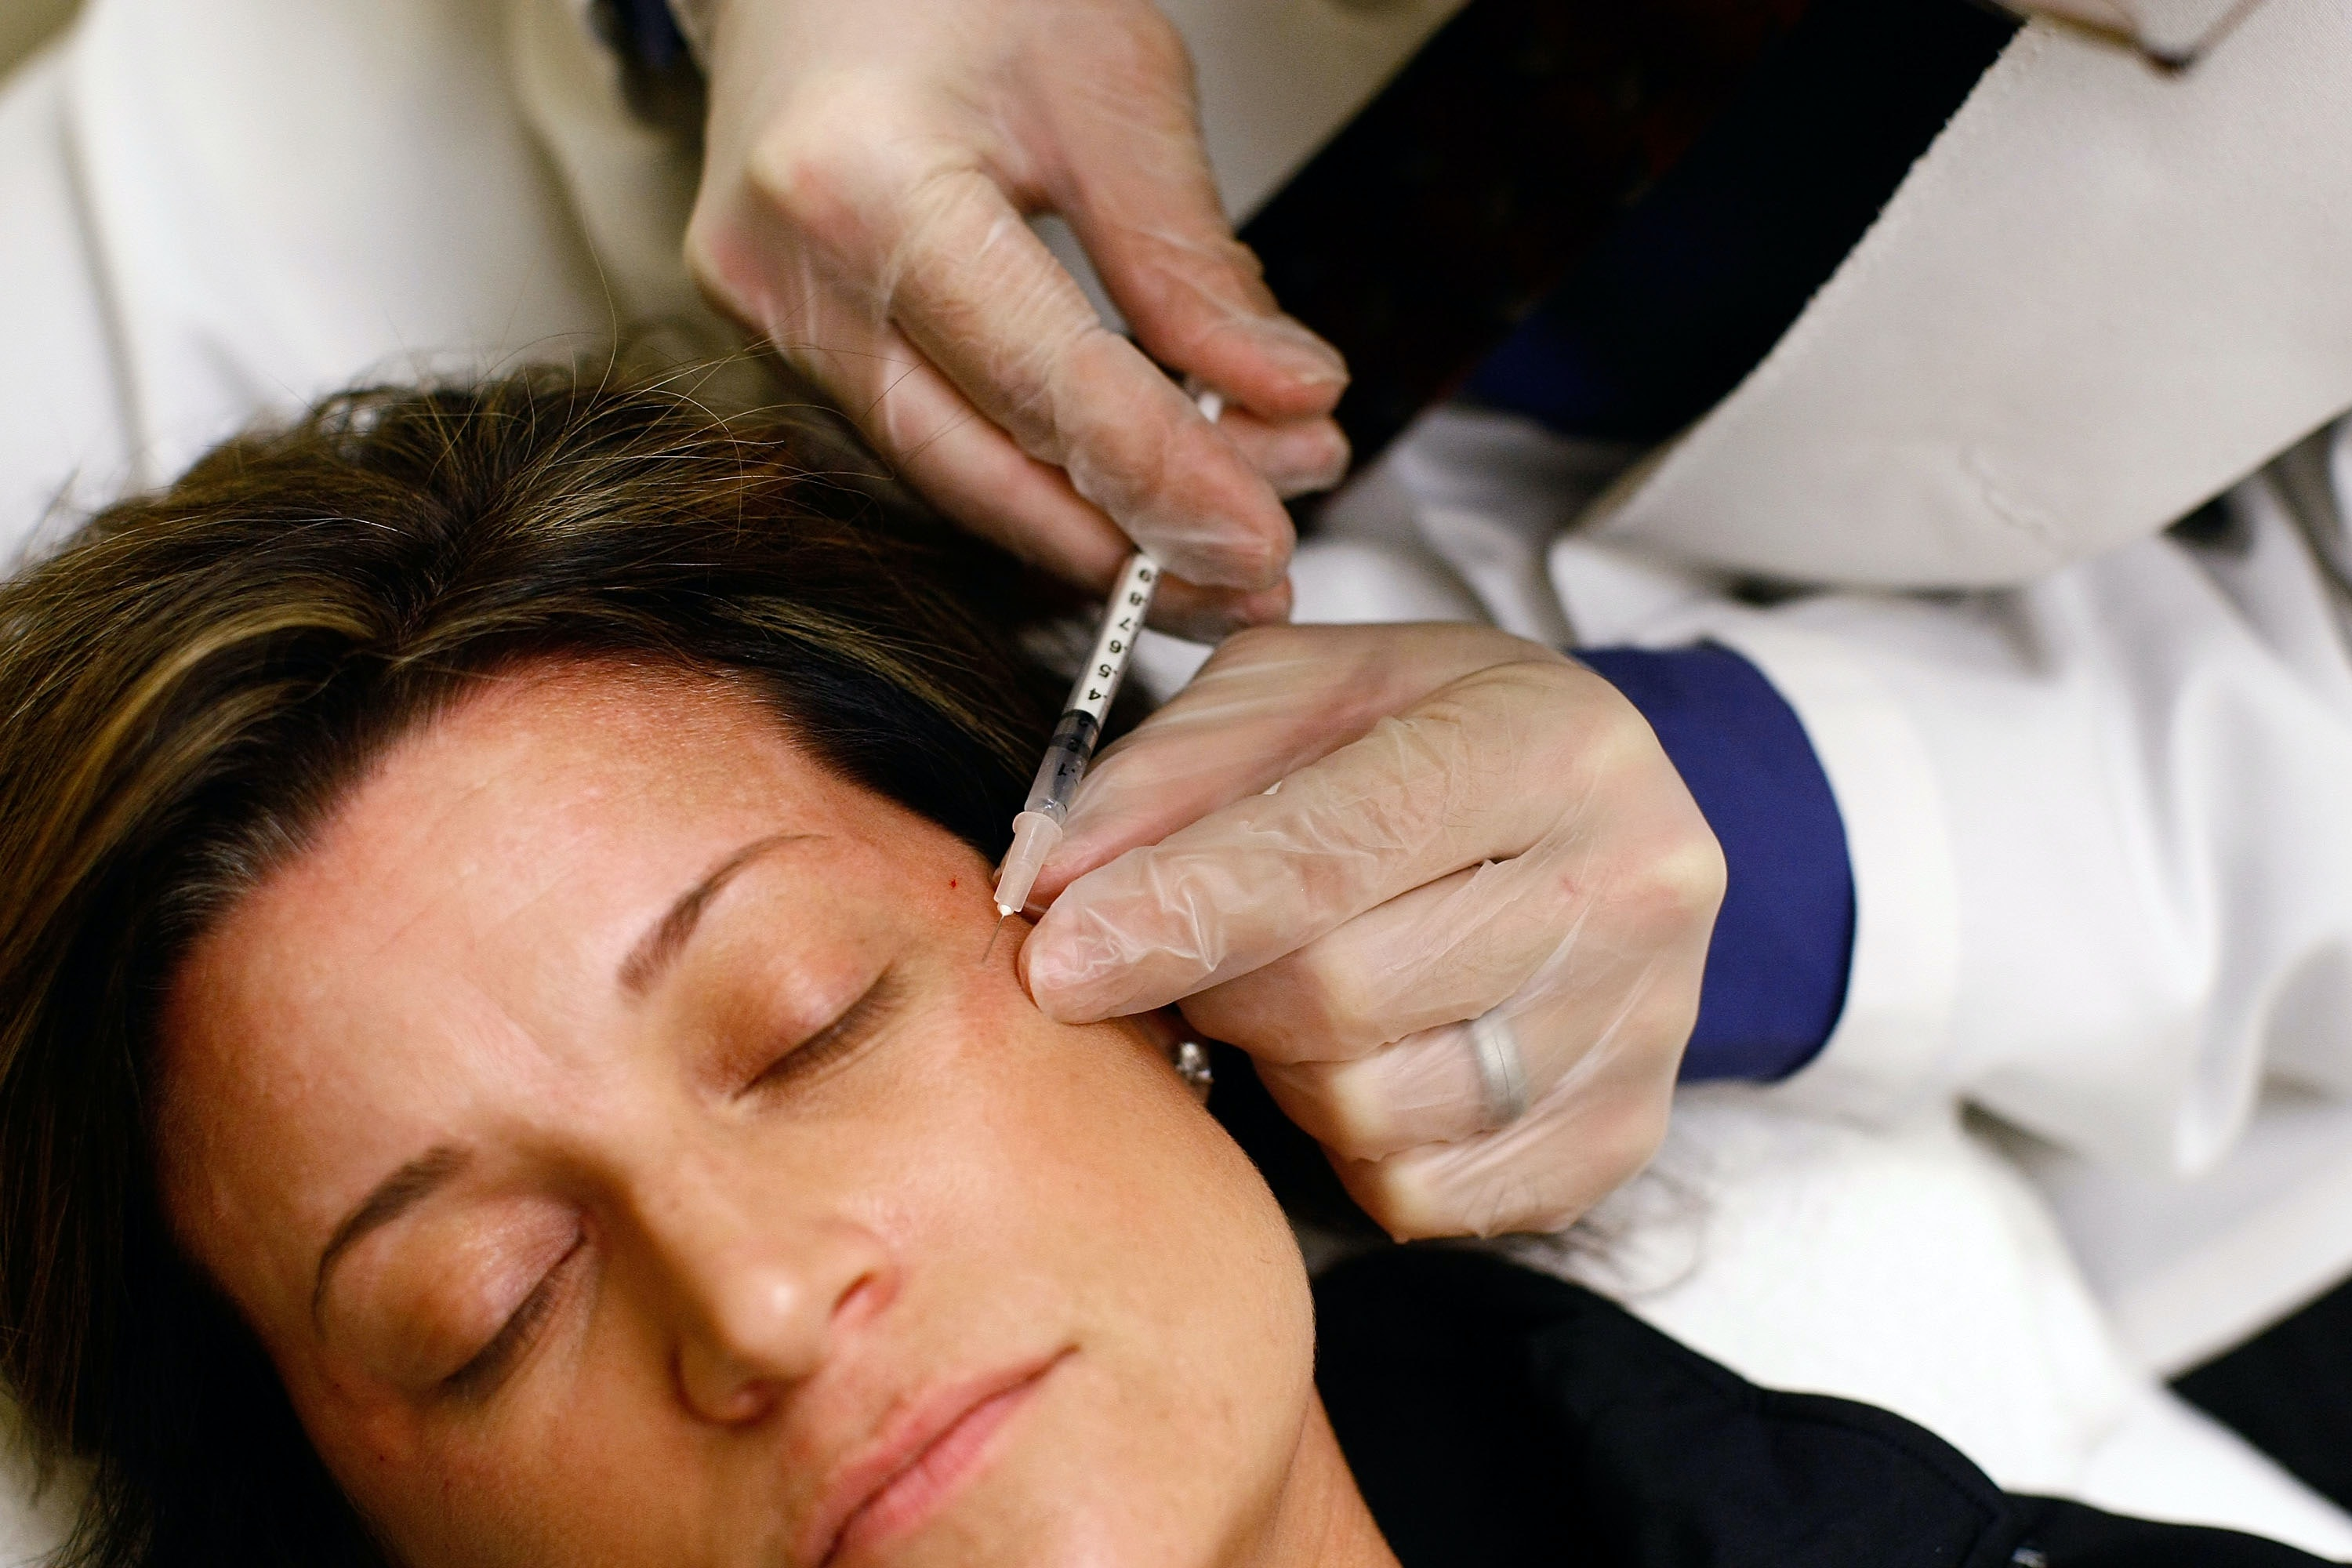 Is Botched Botox Fixable? Sort Of, But Do You Really Want To Take